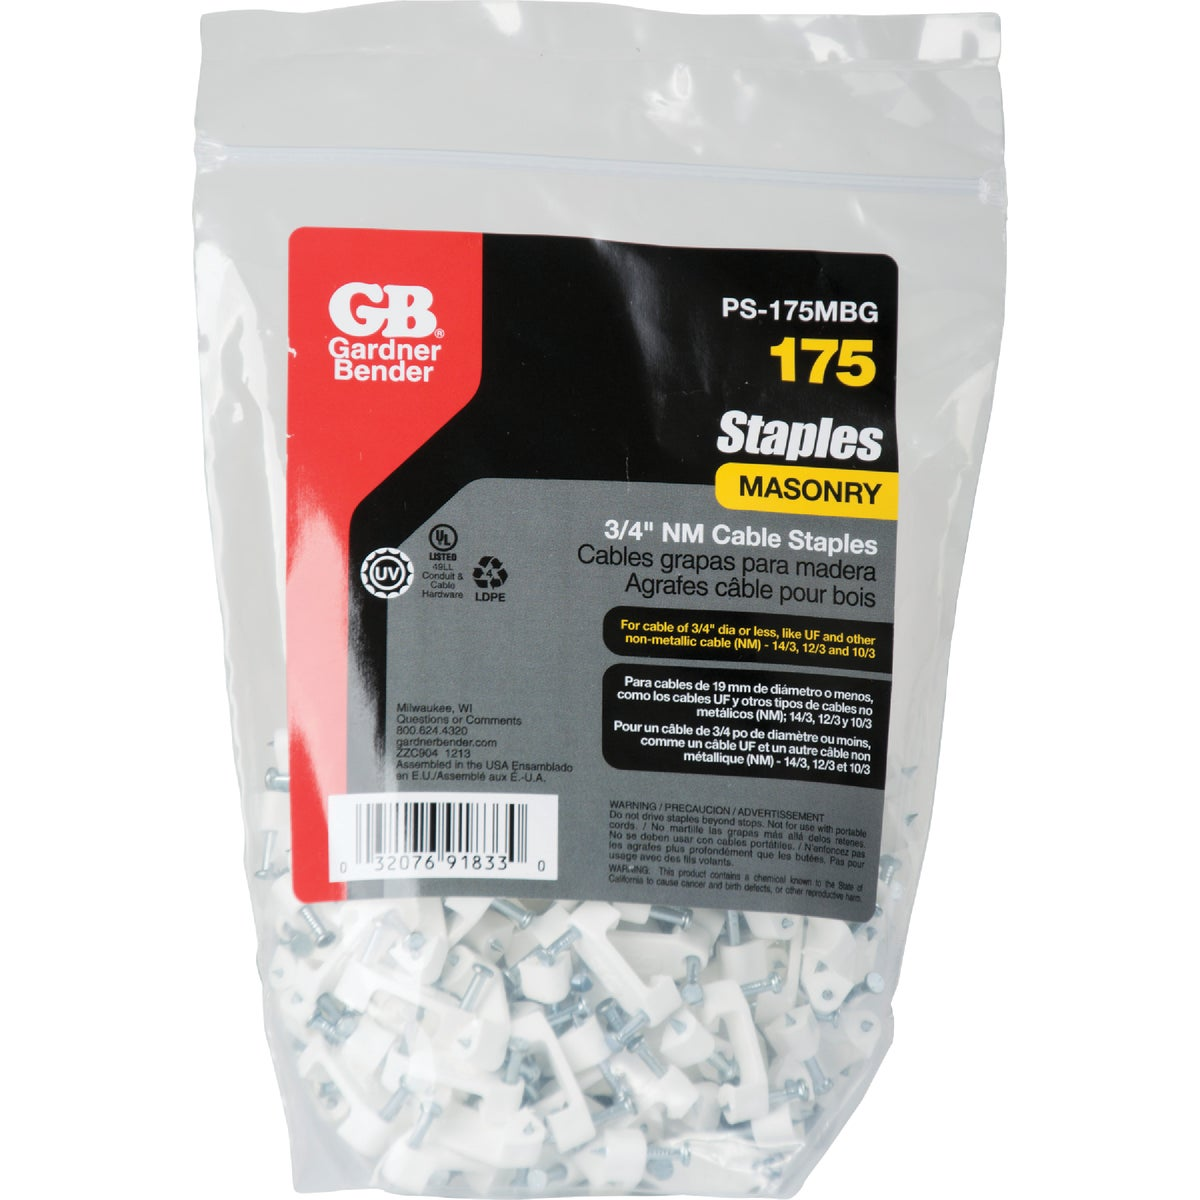 "3/4"" PLASTIC STAPLE - PS-175BG by G B Electrical Inc"